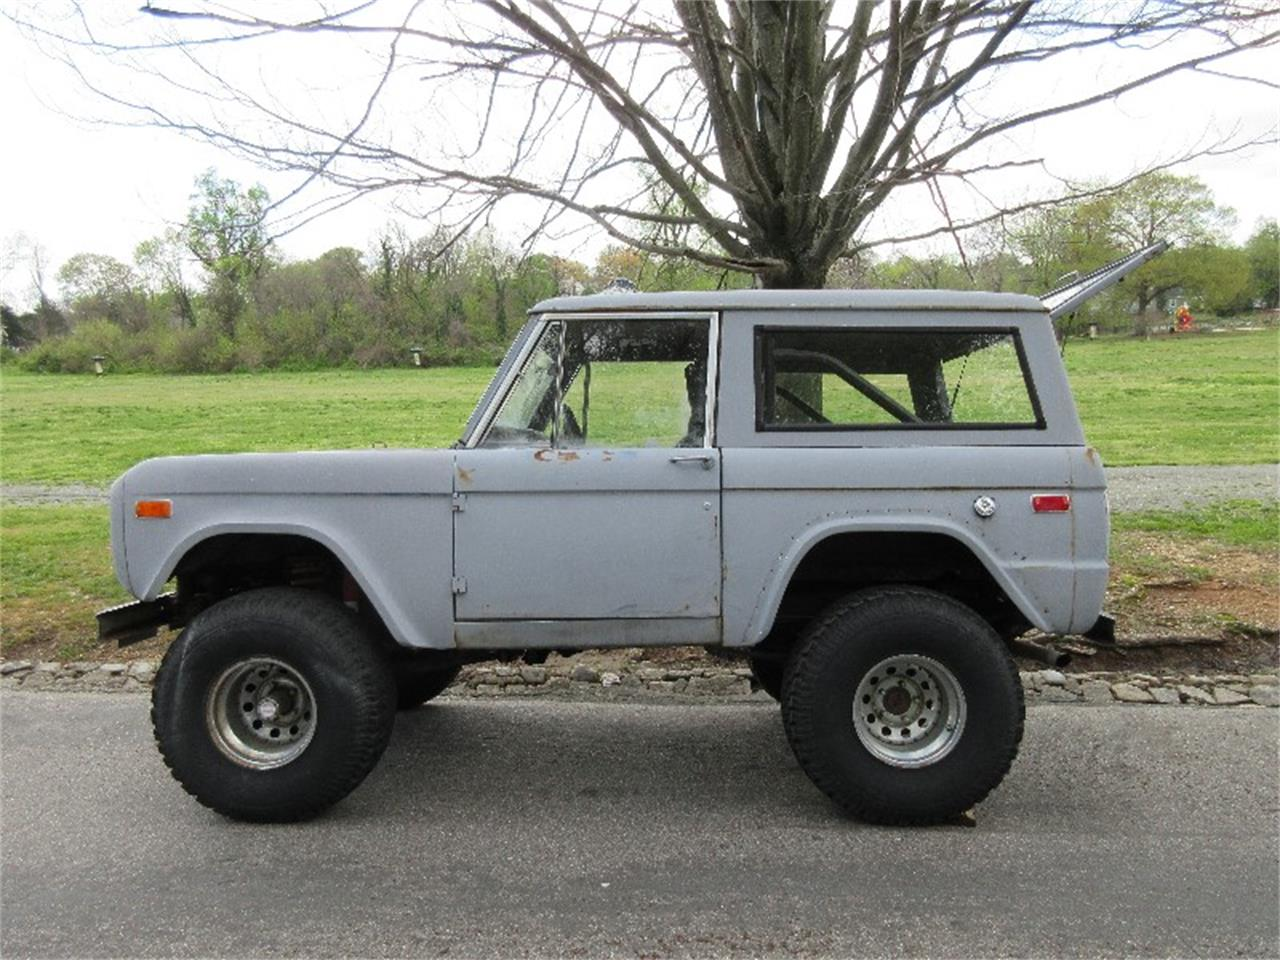 Large picture of 73 bronco jf2r